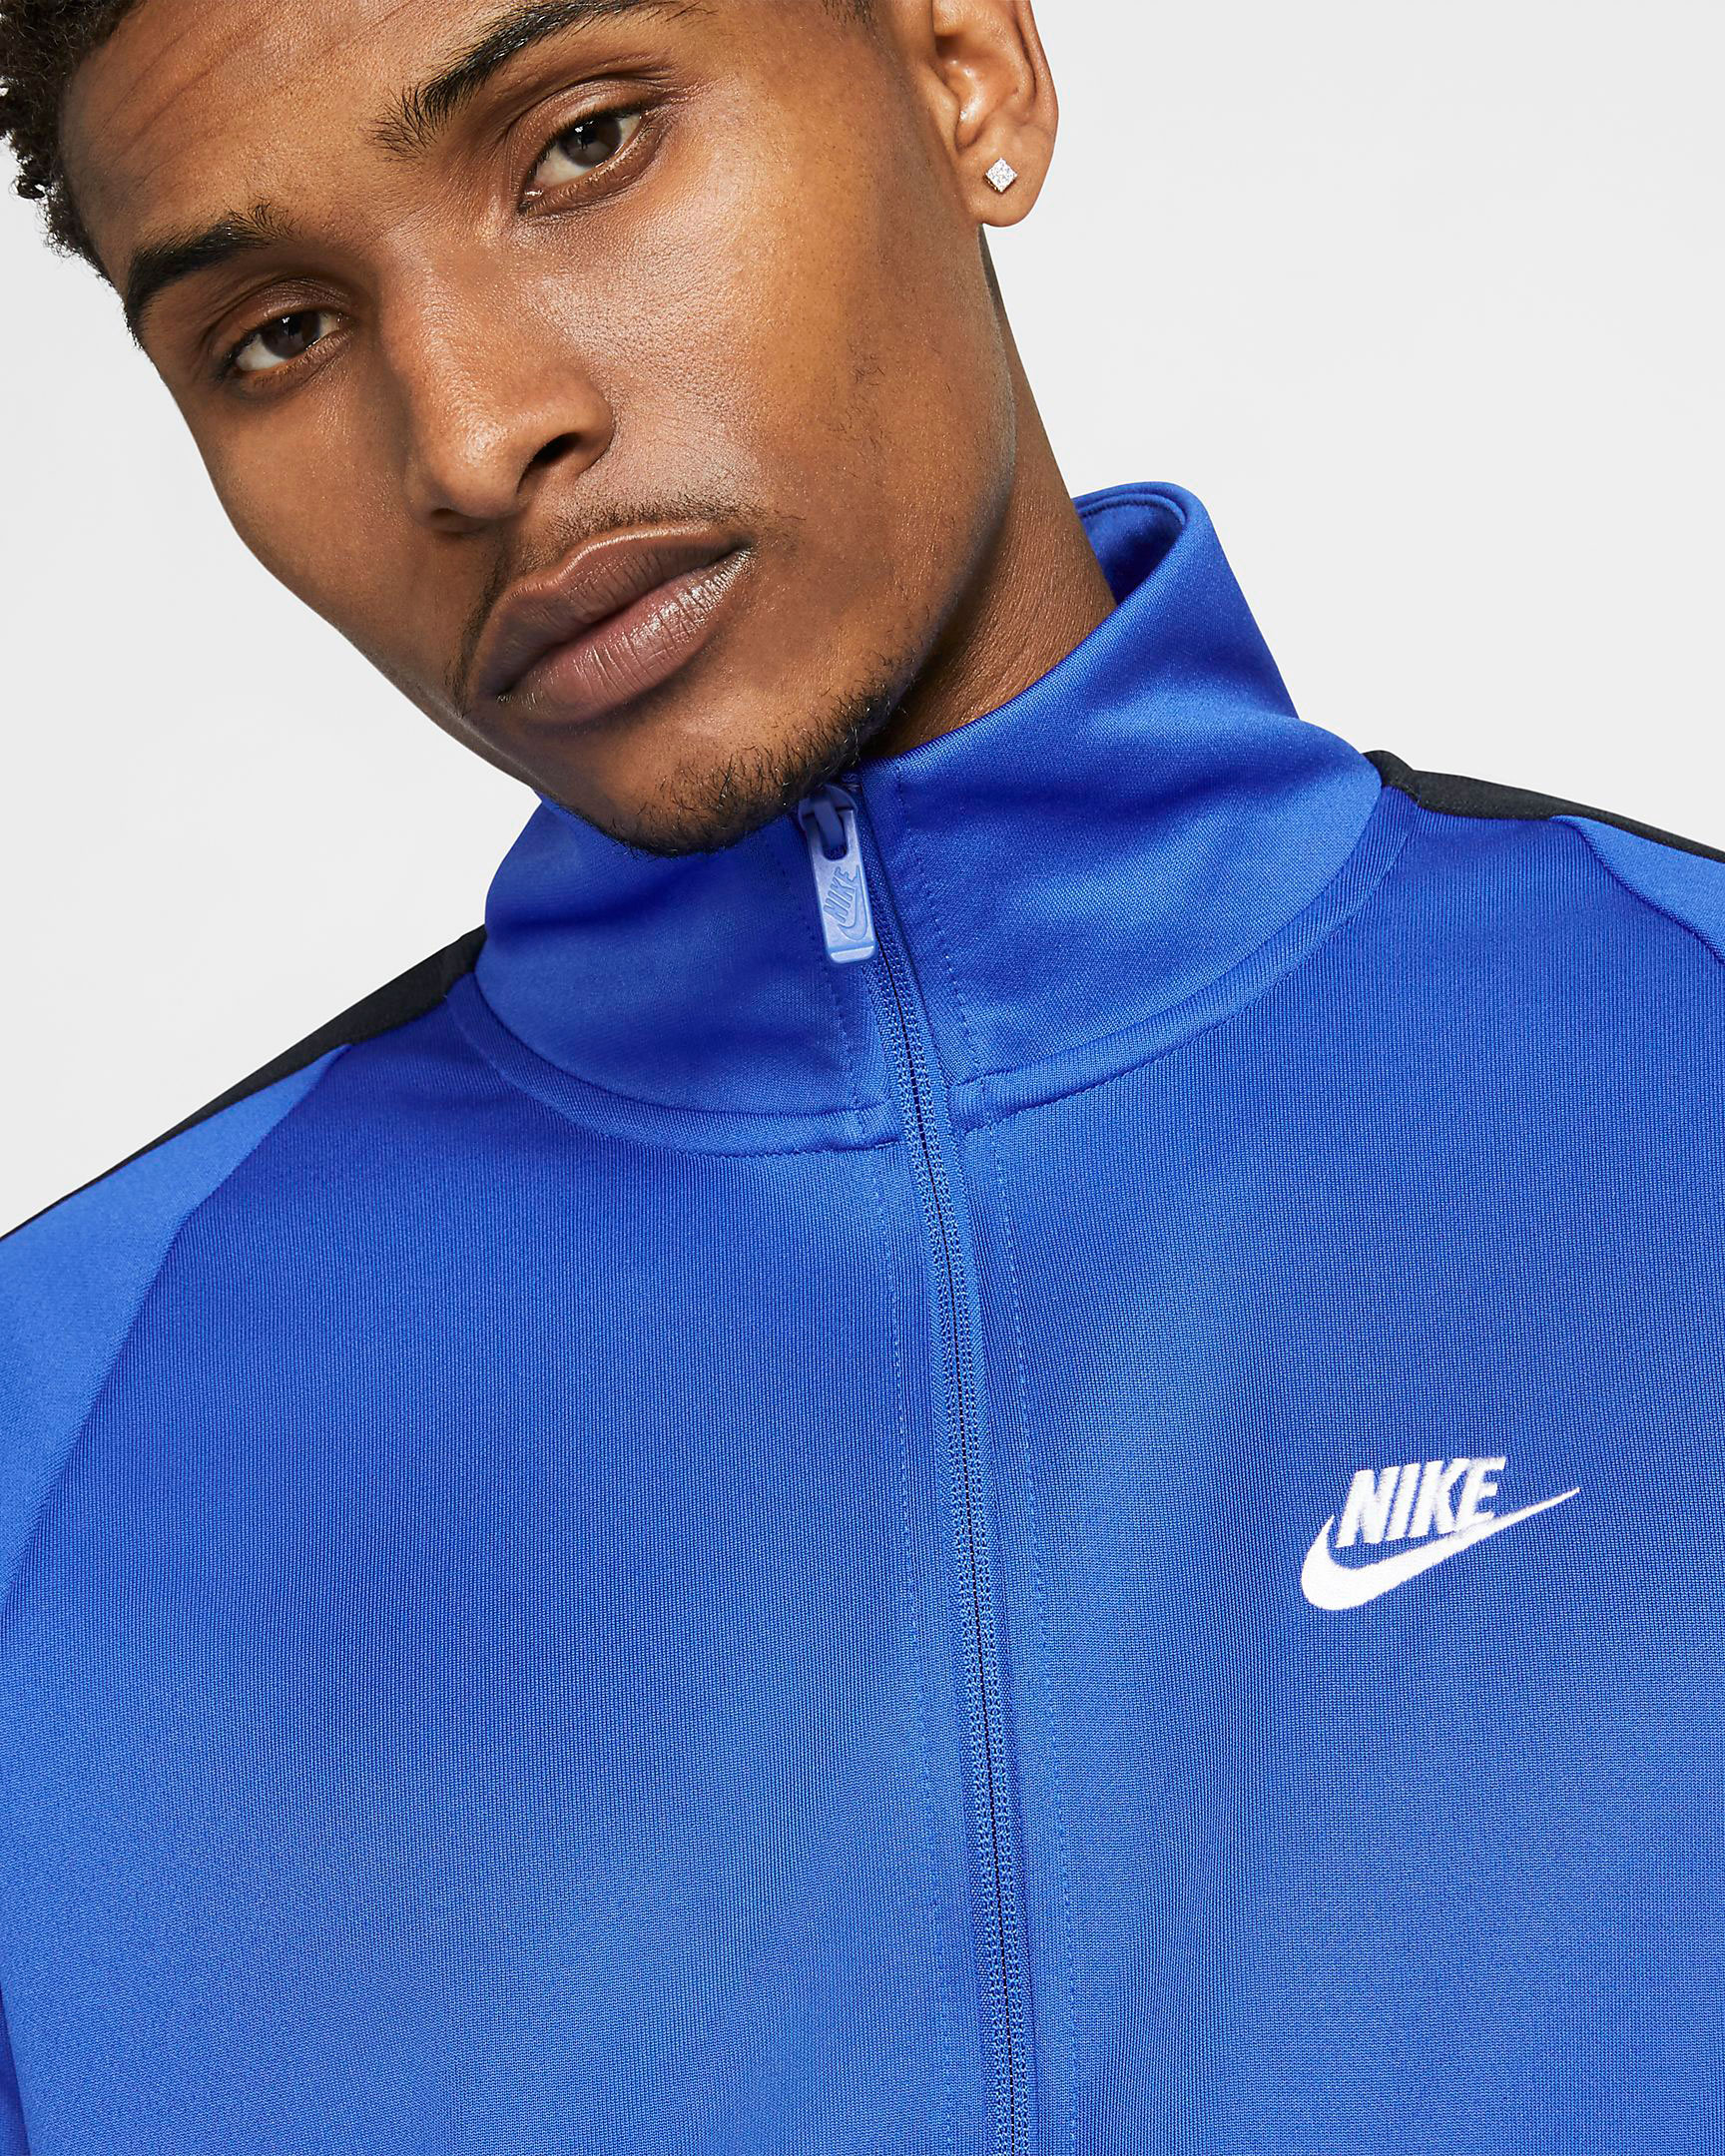 jordan-14-hyper-royal-blue-nike-track-jacket-match-1